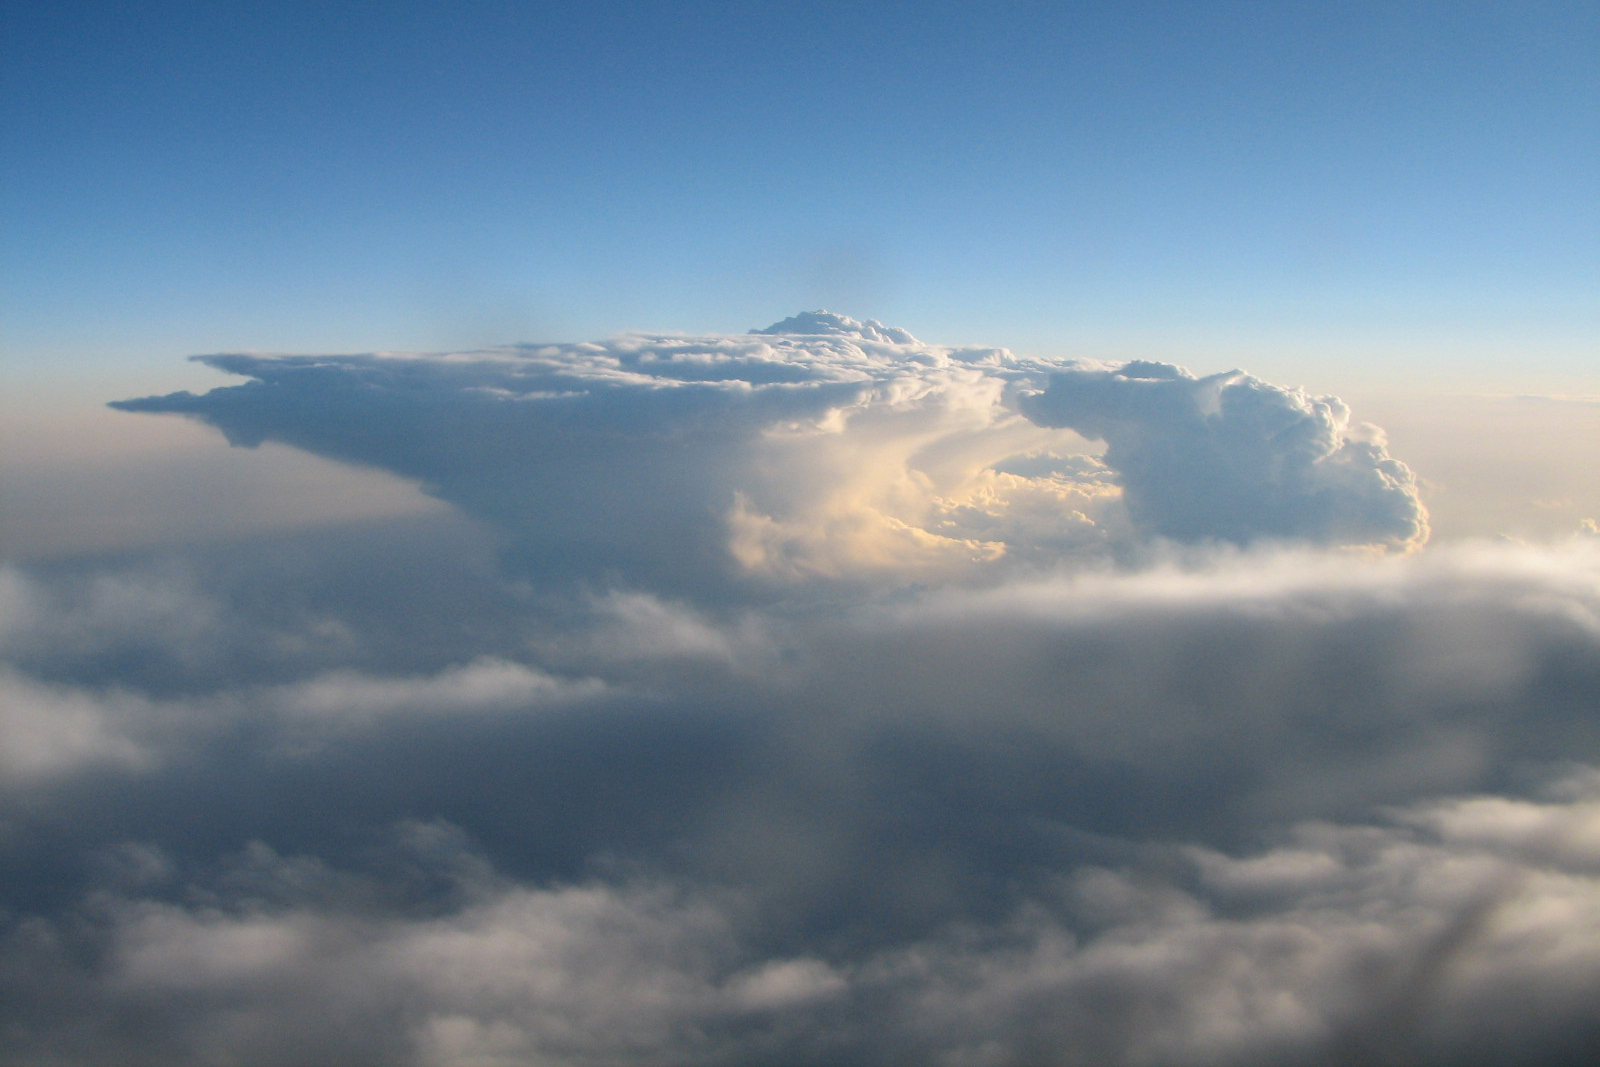 Thunderstorm over Oklahoma, seen from a plane.